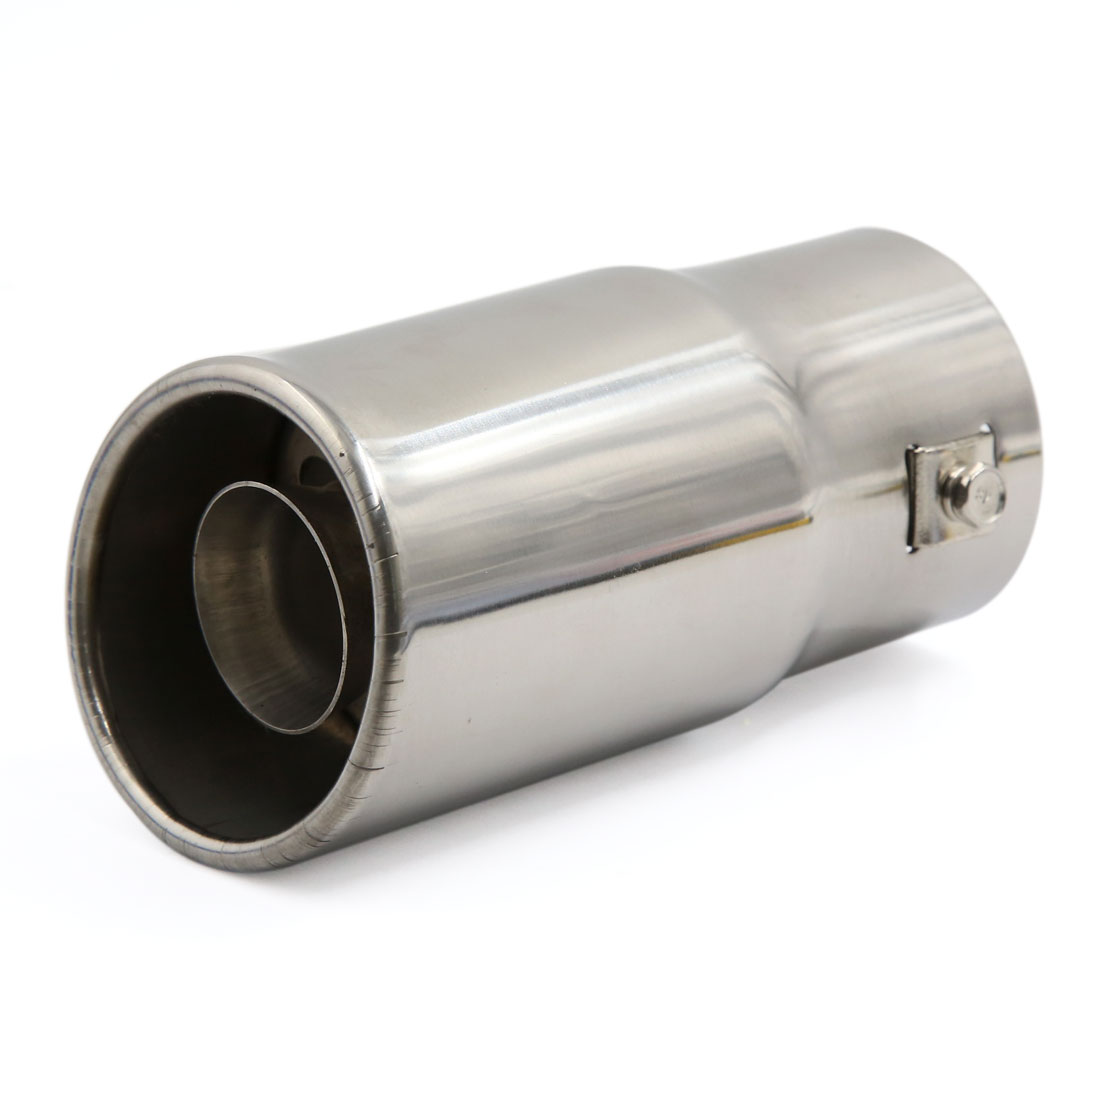 77mm Outlet Dia Stainless Steel Exhaust Muffler Silencer Tip Pipe Tail for Car